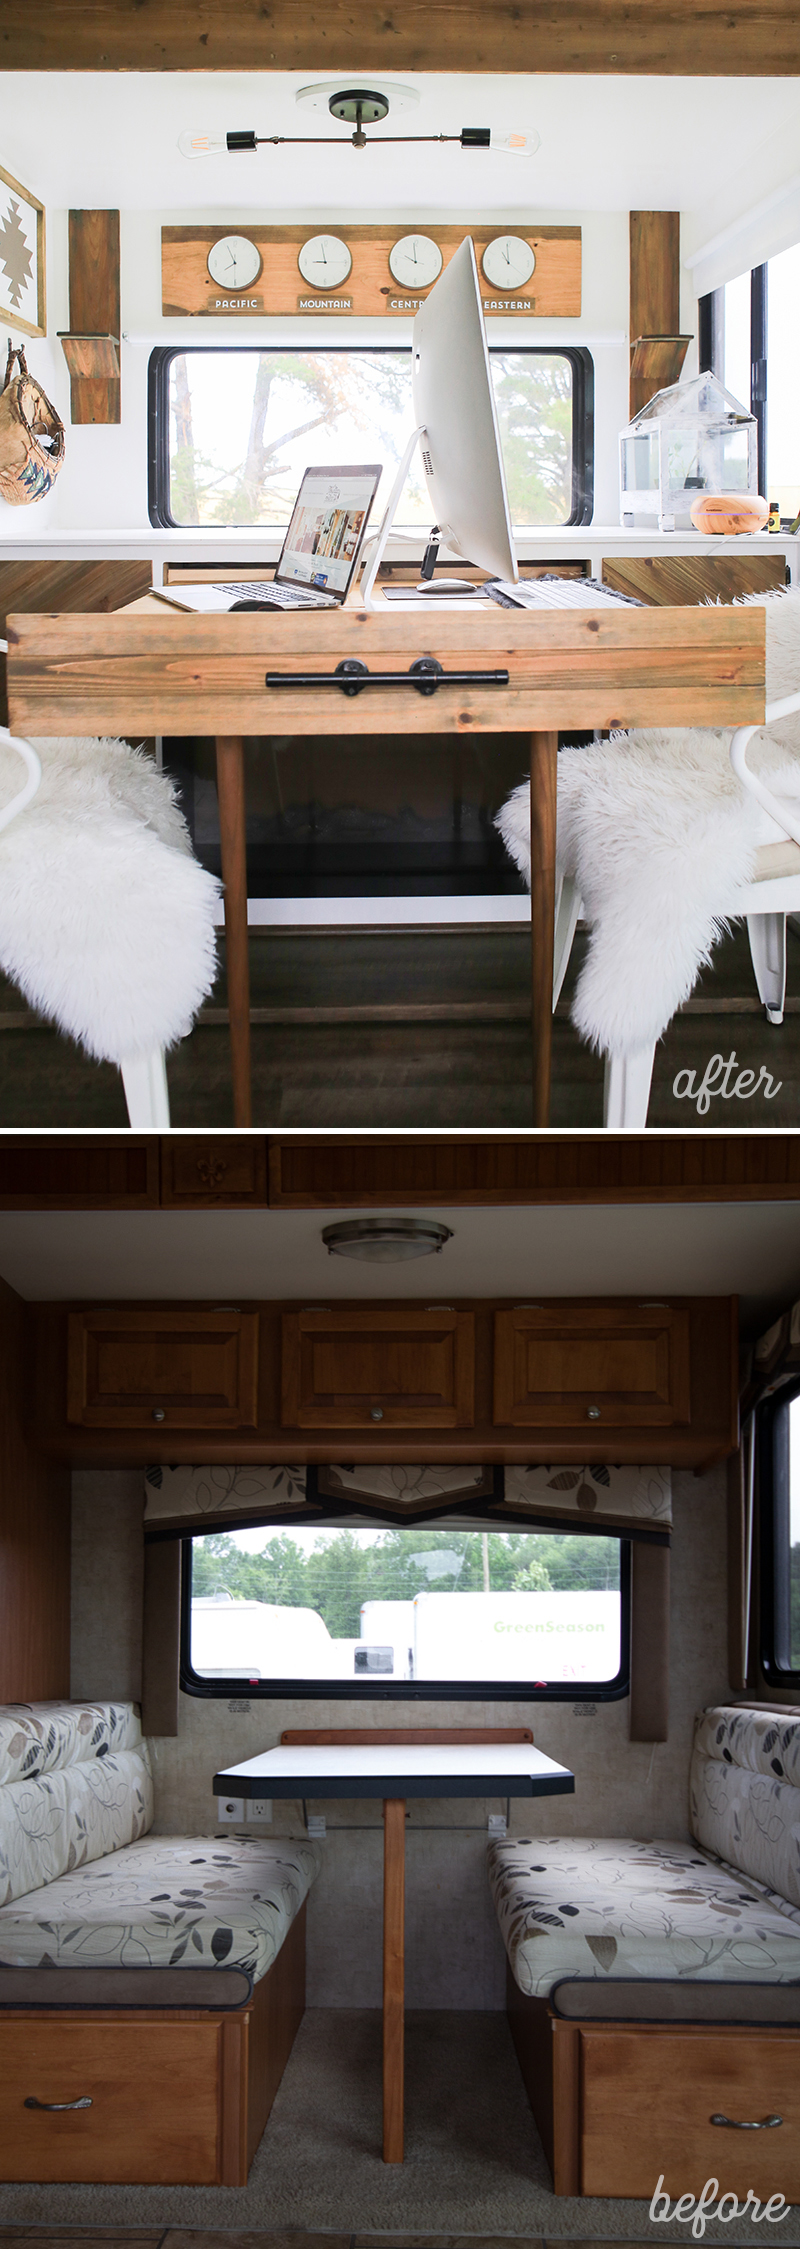 RV dinette booth makeover